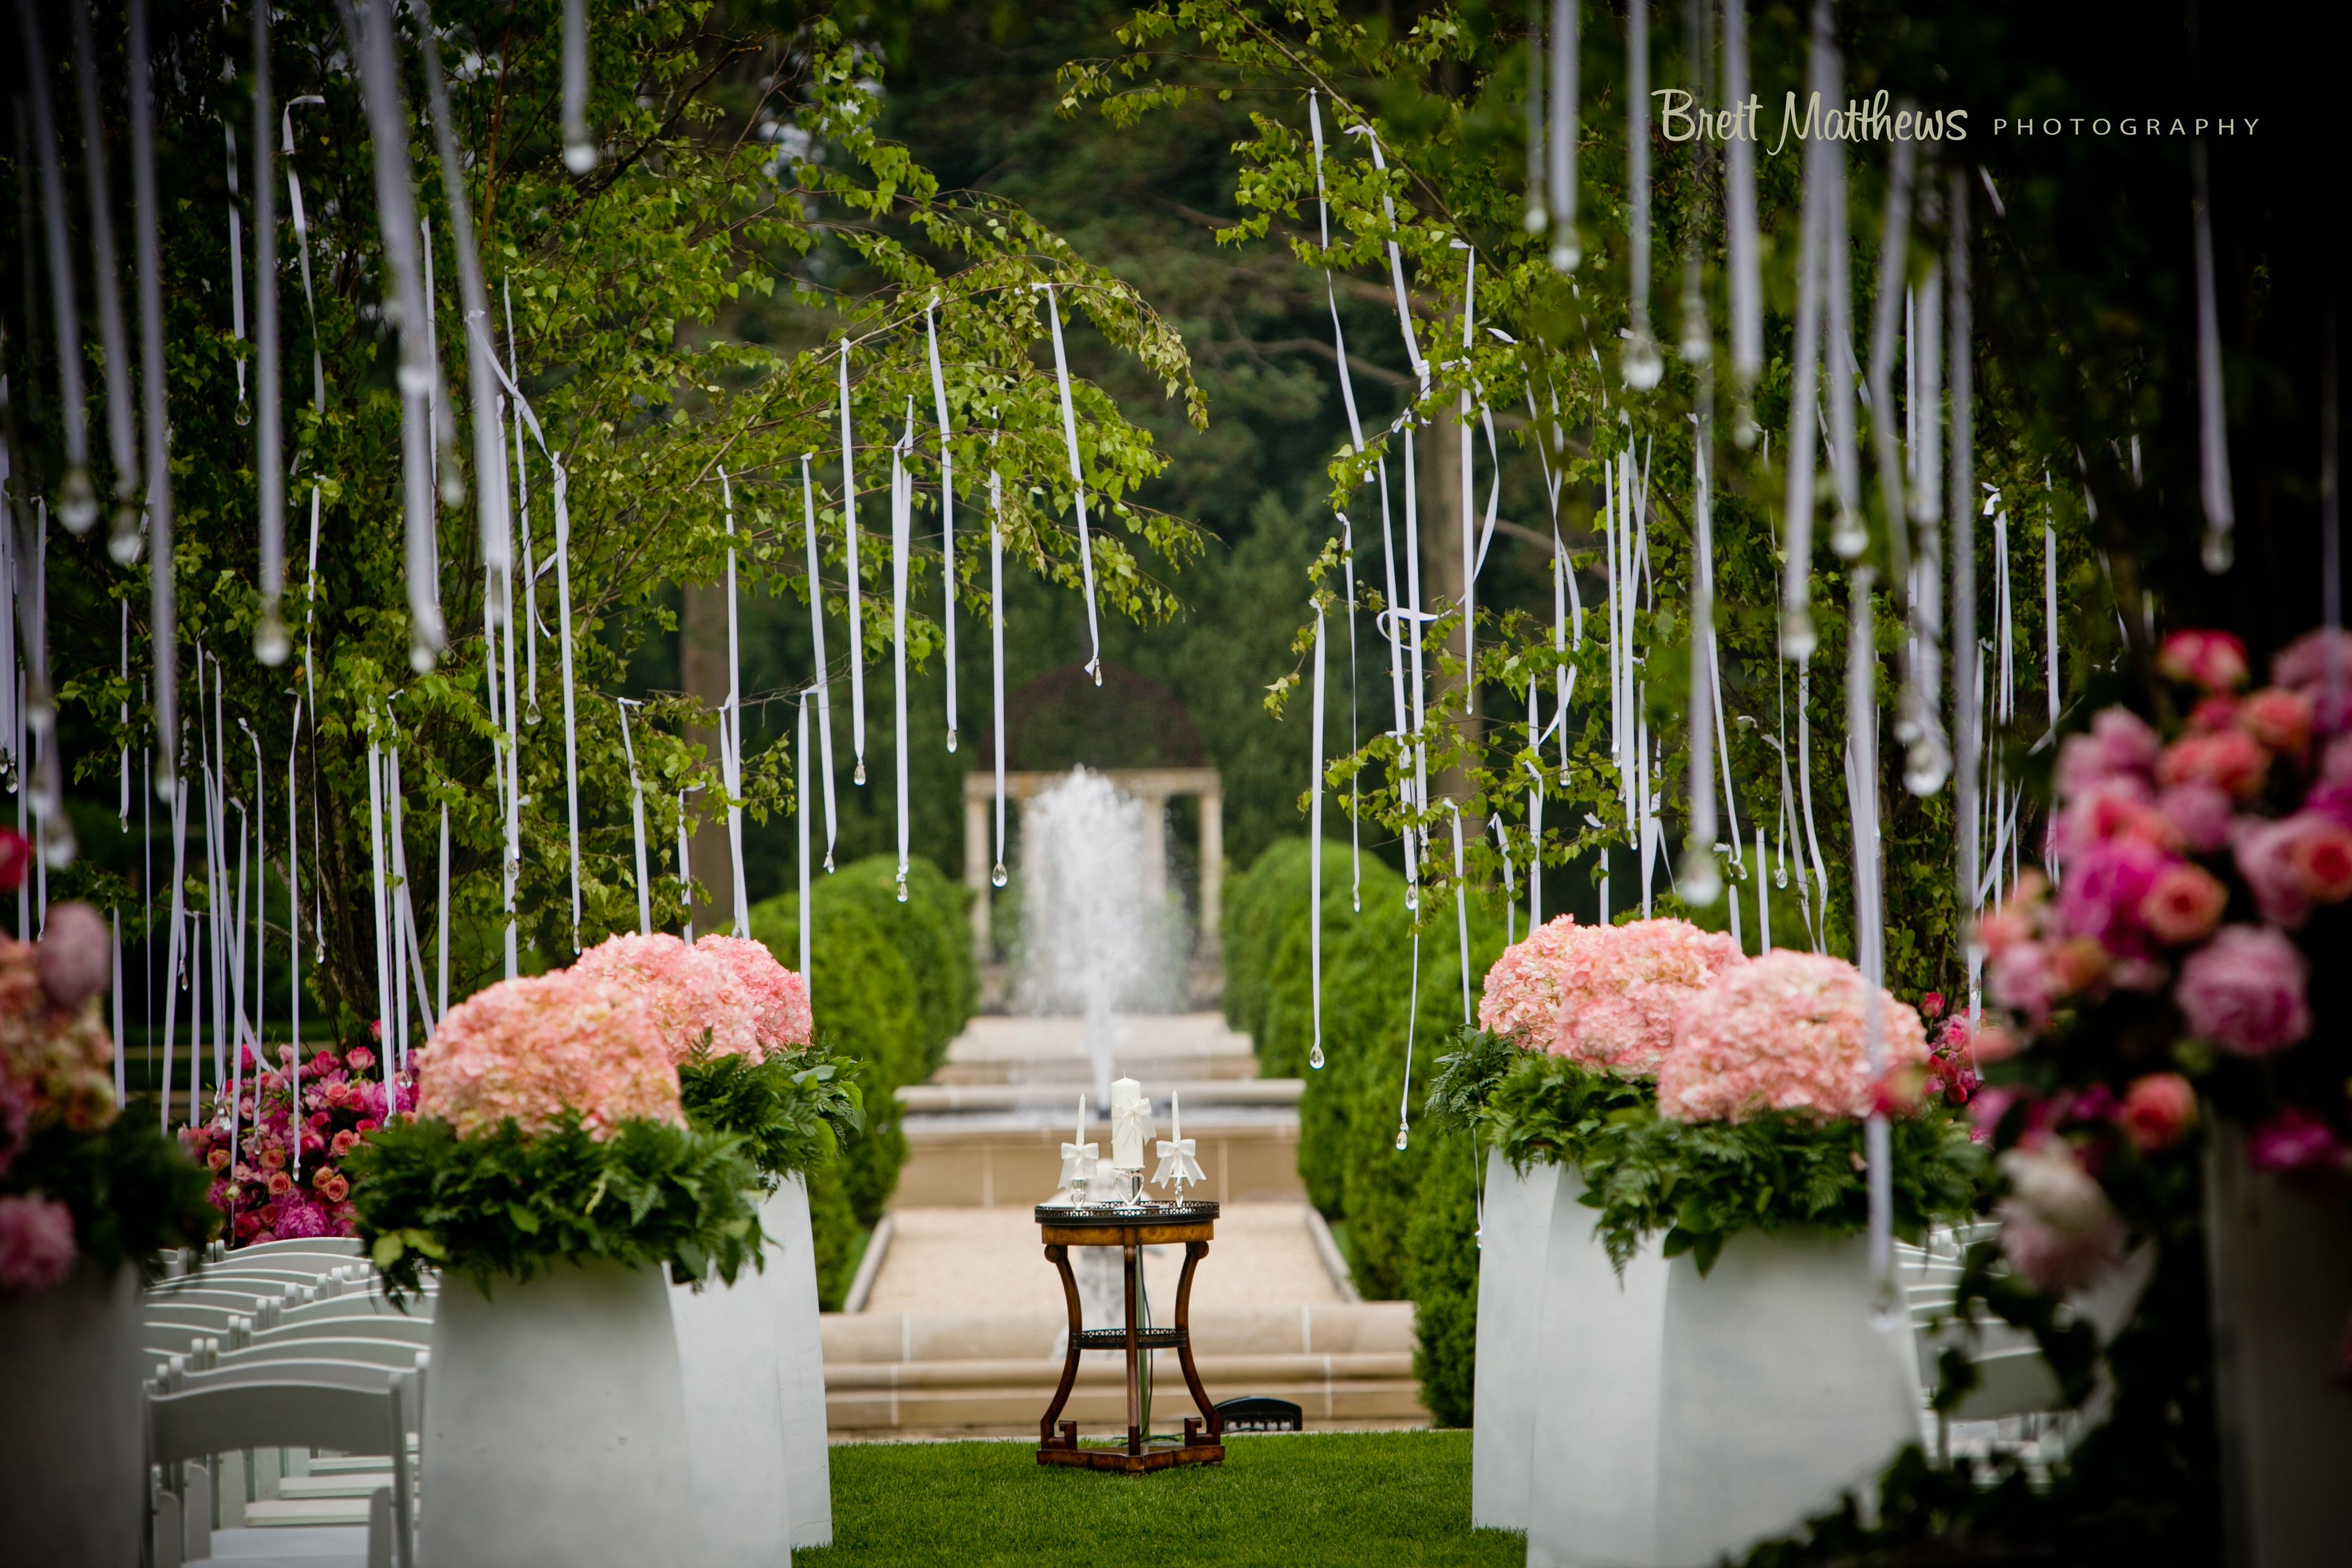 Pin By Kelly Melius On Oheka Castle Wedding Inspiration Wedding Oheka Castle Castle Wedding Inspiration